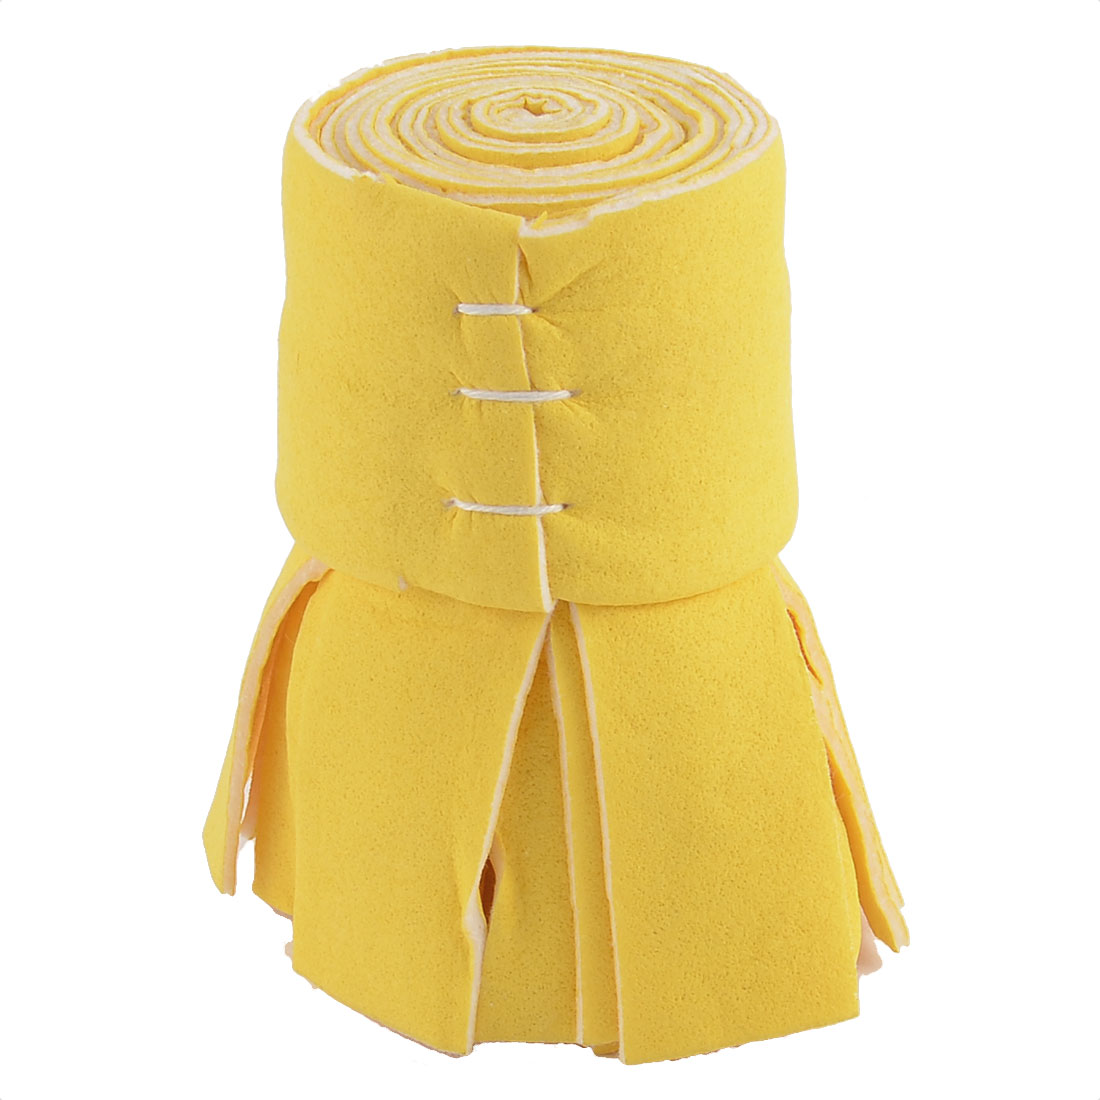 PX011 Cylindrical Wall Paper Paint Embossing Applicator DIY Tool Yellow